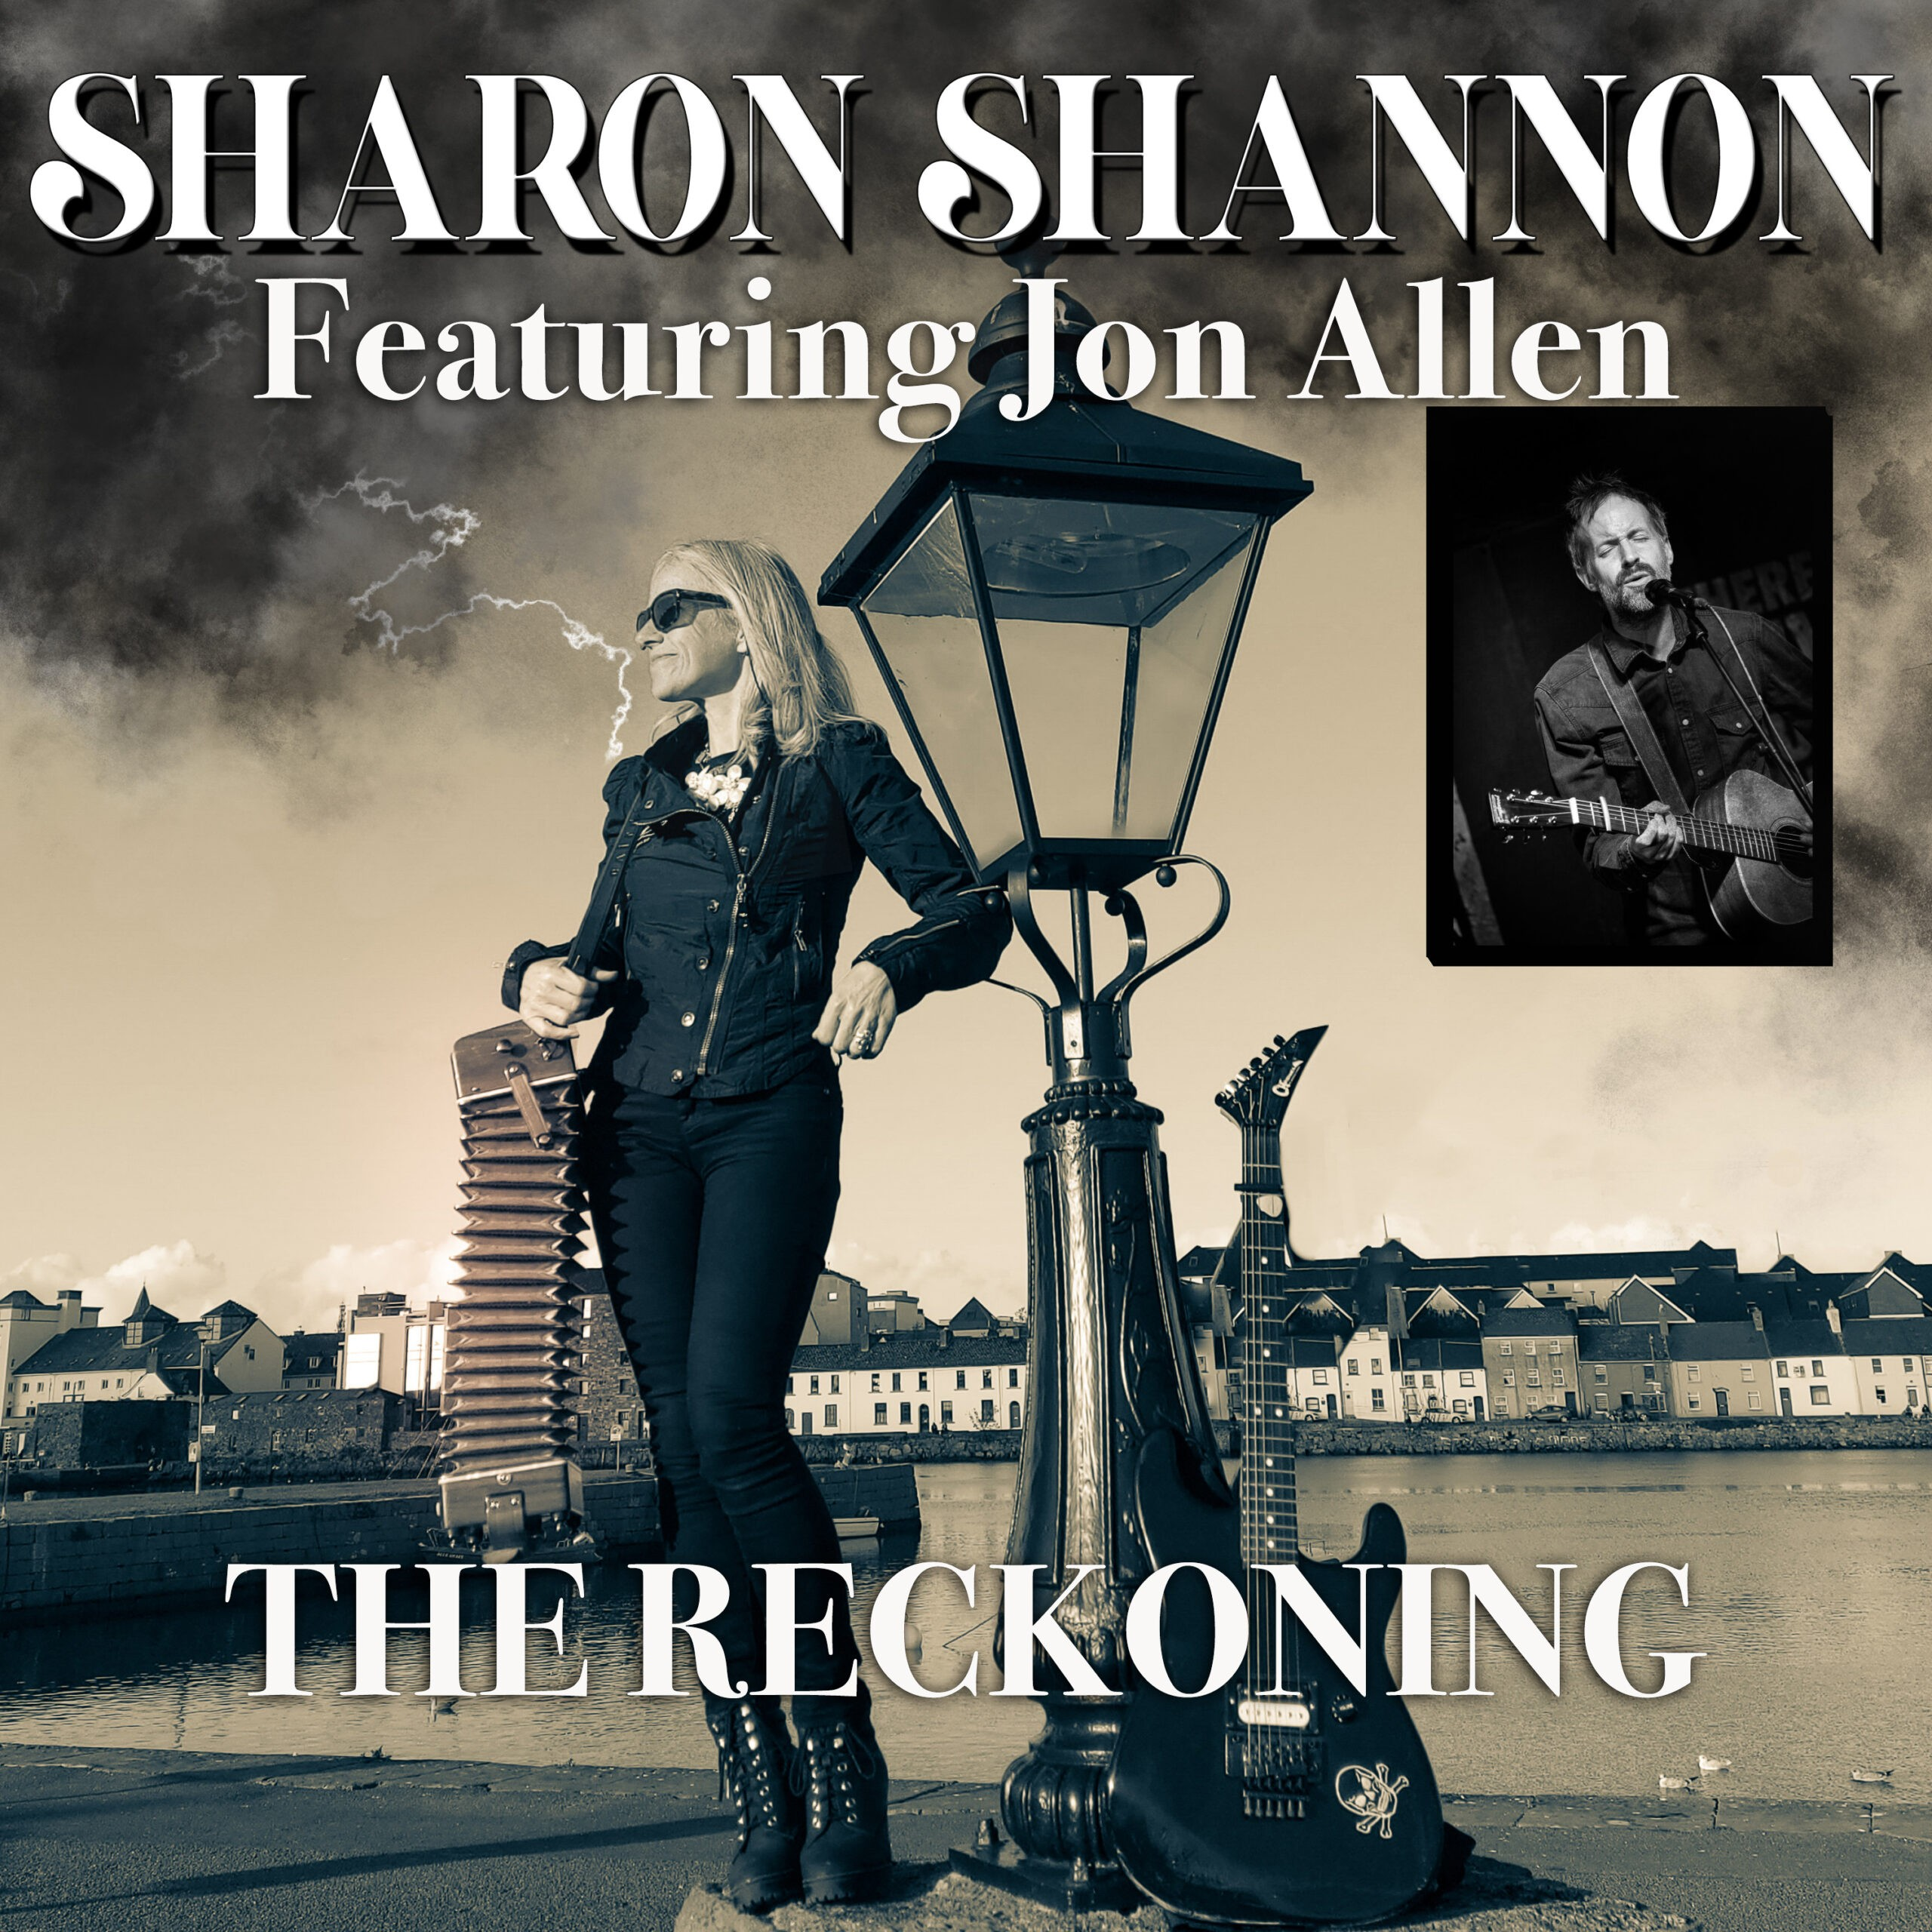 Sharon Shannon teams up with UK songwriter Jon Allen for Apocalyptic Folk Ballad 'The Reckoning'